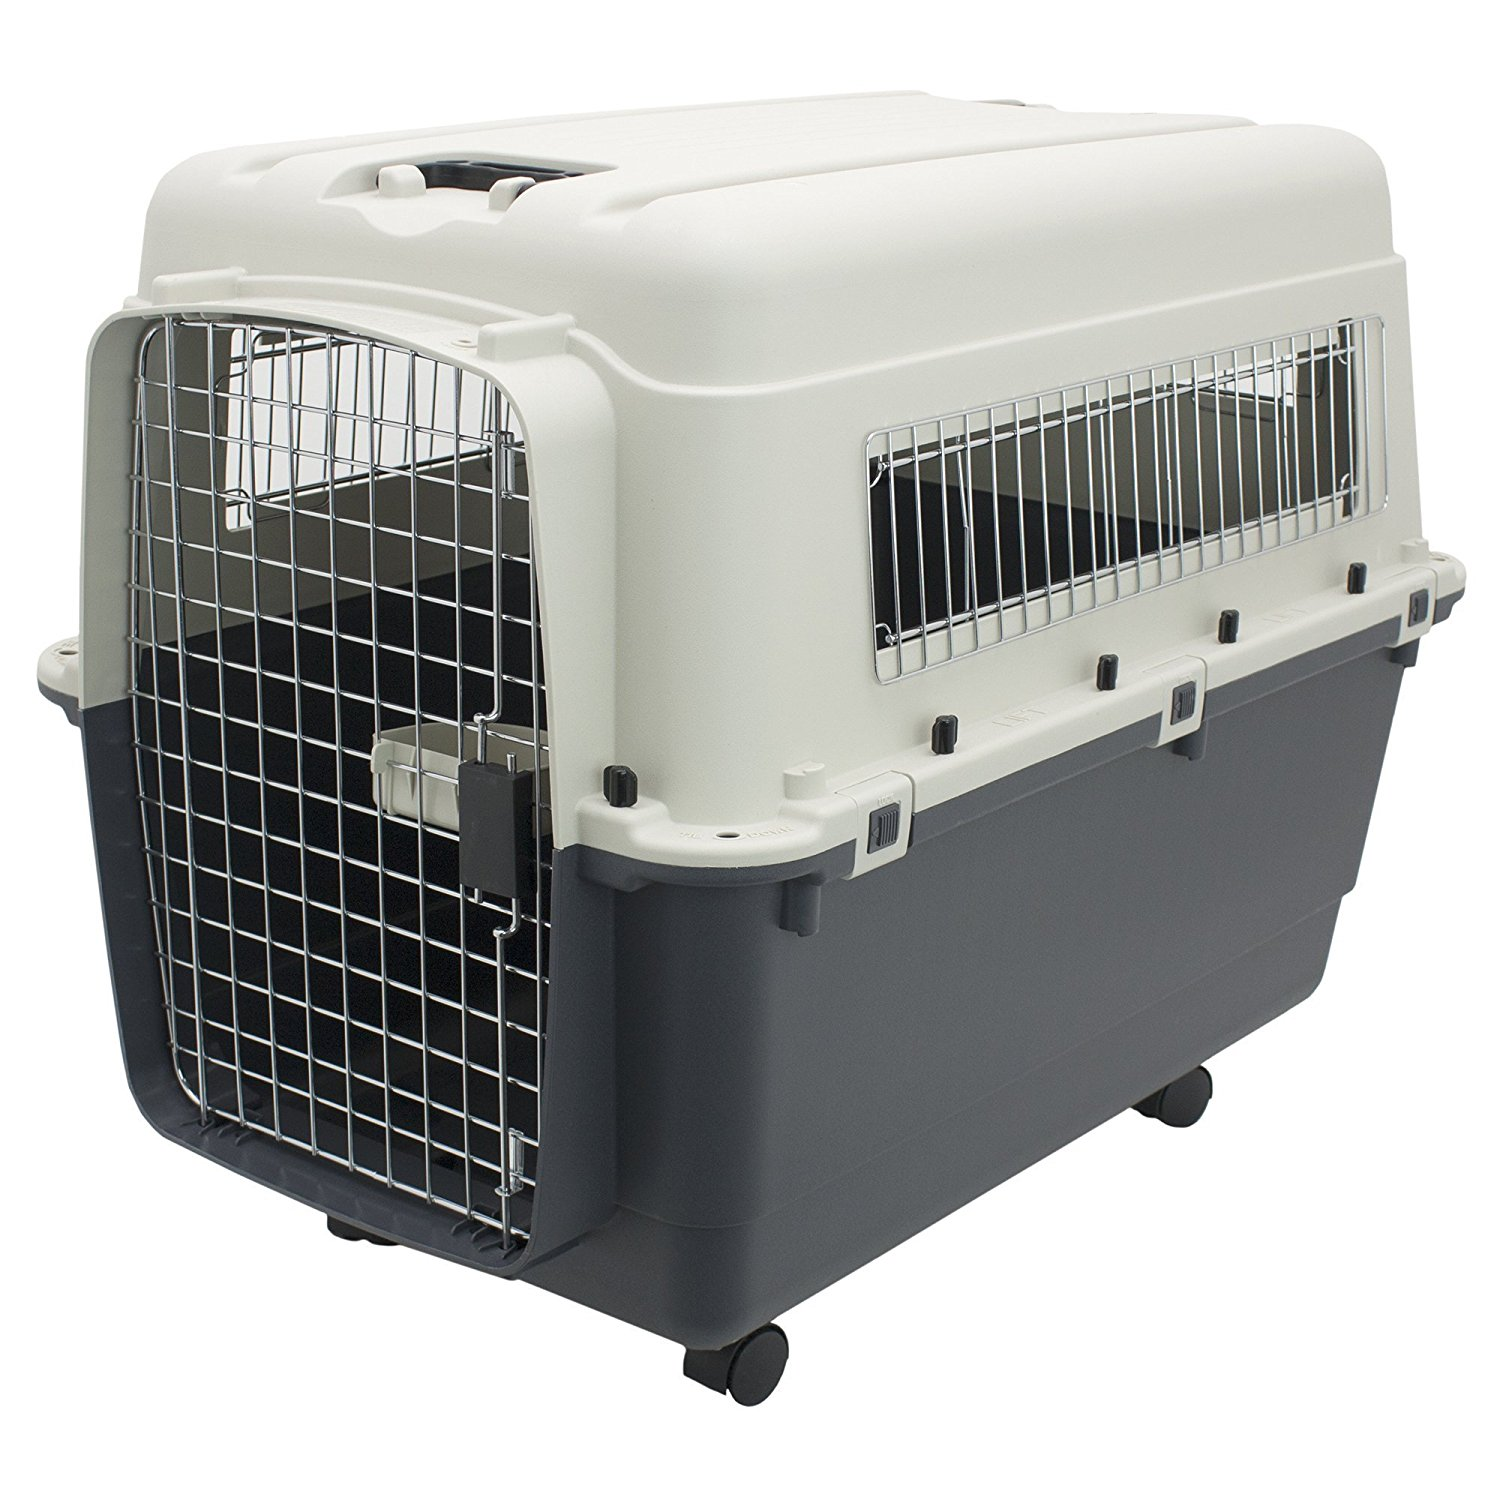 "Pet Kennel Direct 40"" Airline Approved Plastic Dog / Cat Pet Kennel Carrier or Air Travel with Chrome Door and Food / Water Cup and Wheels Foldable Dog Travel Crate"